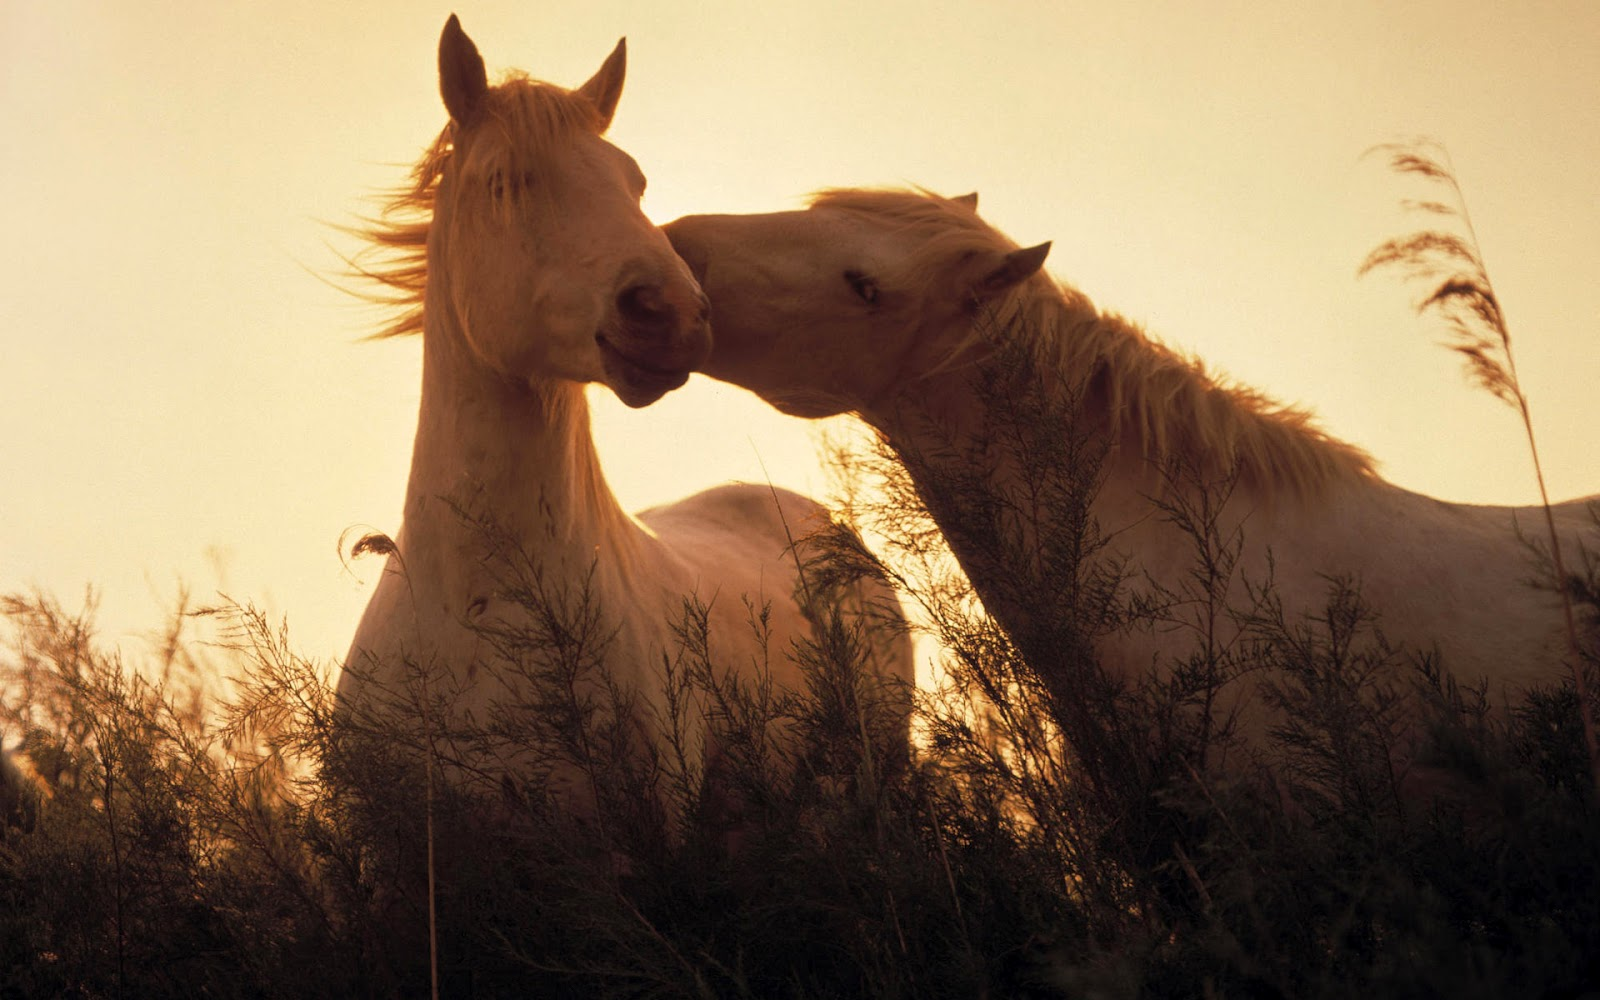 Download   Wallpaper Horse Couple - love+horses  Snapshot_447988.jpg